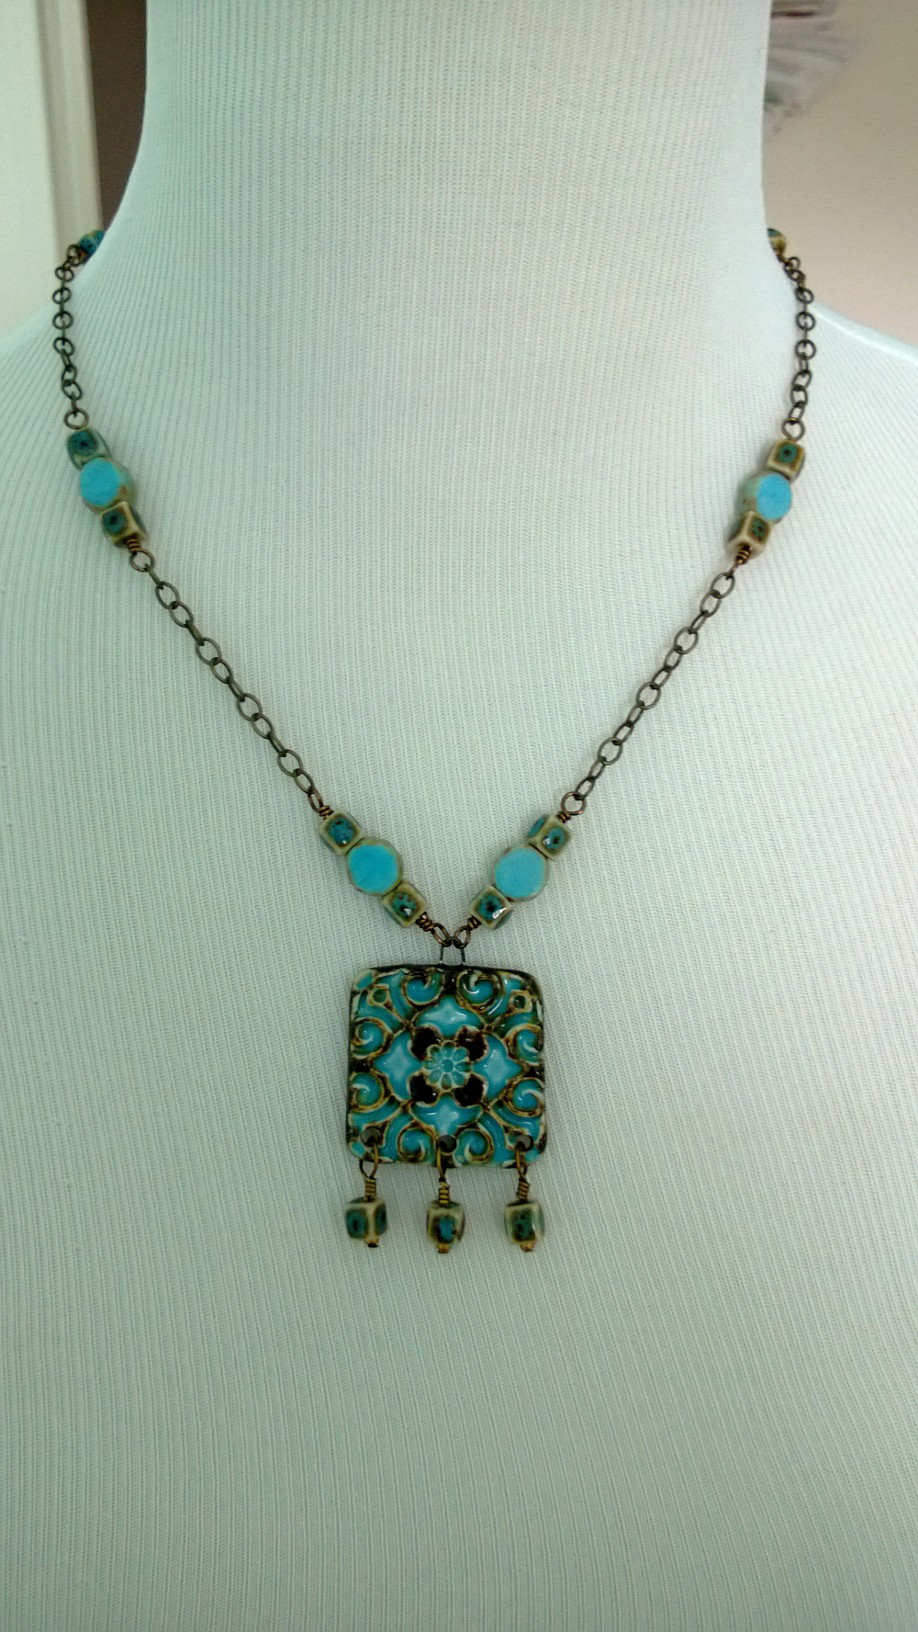 Turquoise and chocolate focal paired with porcelain cubes and picasso discs on bronze finish chain.